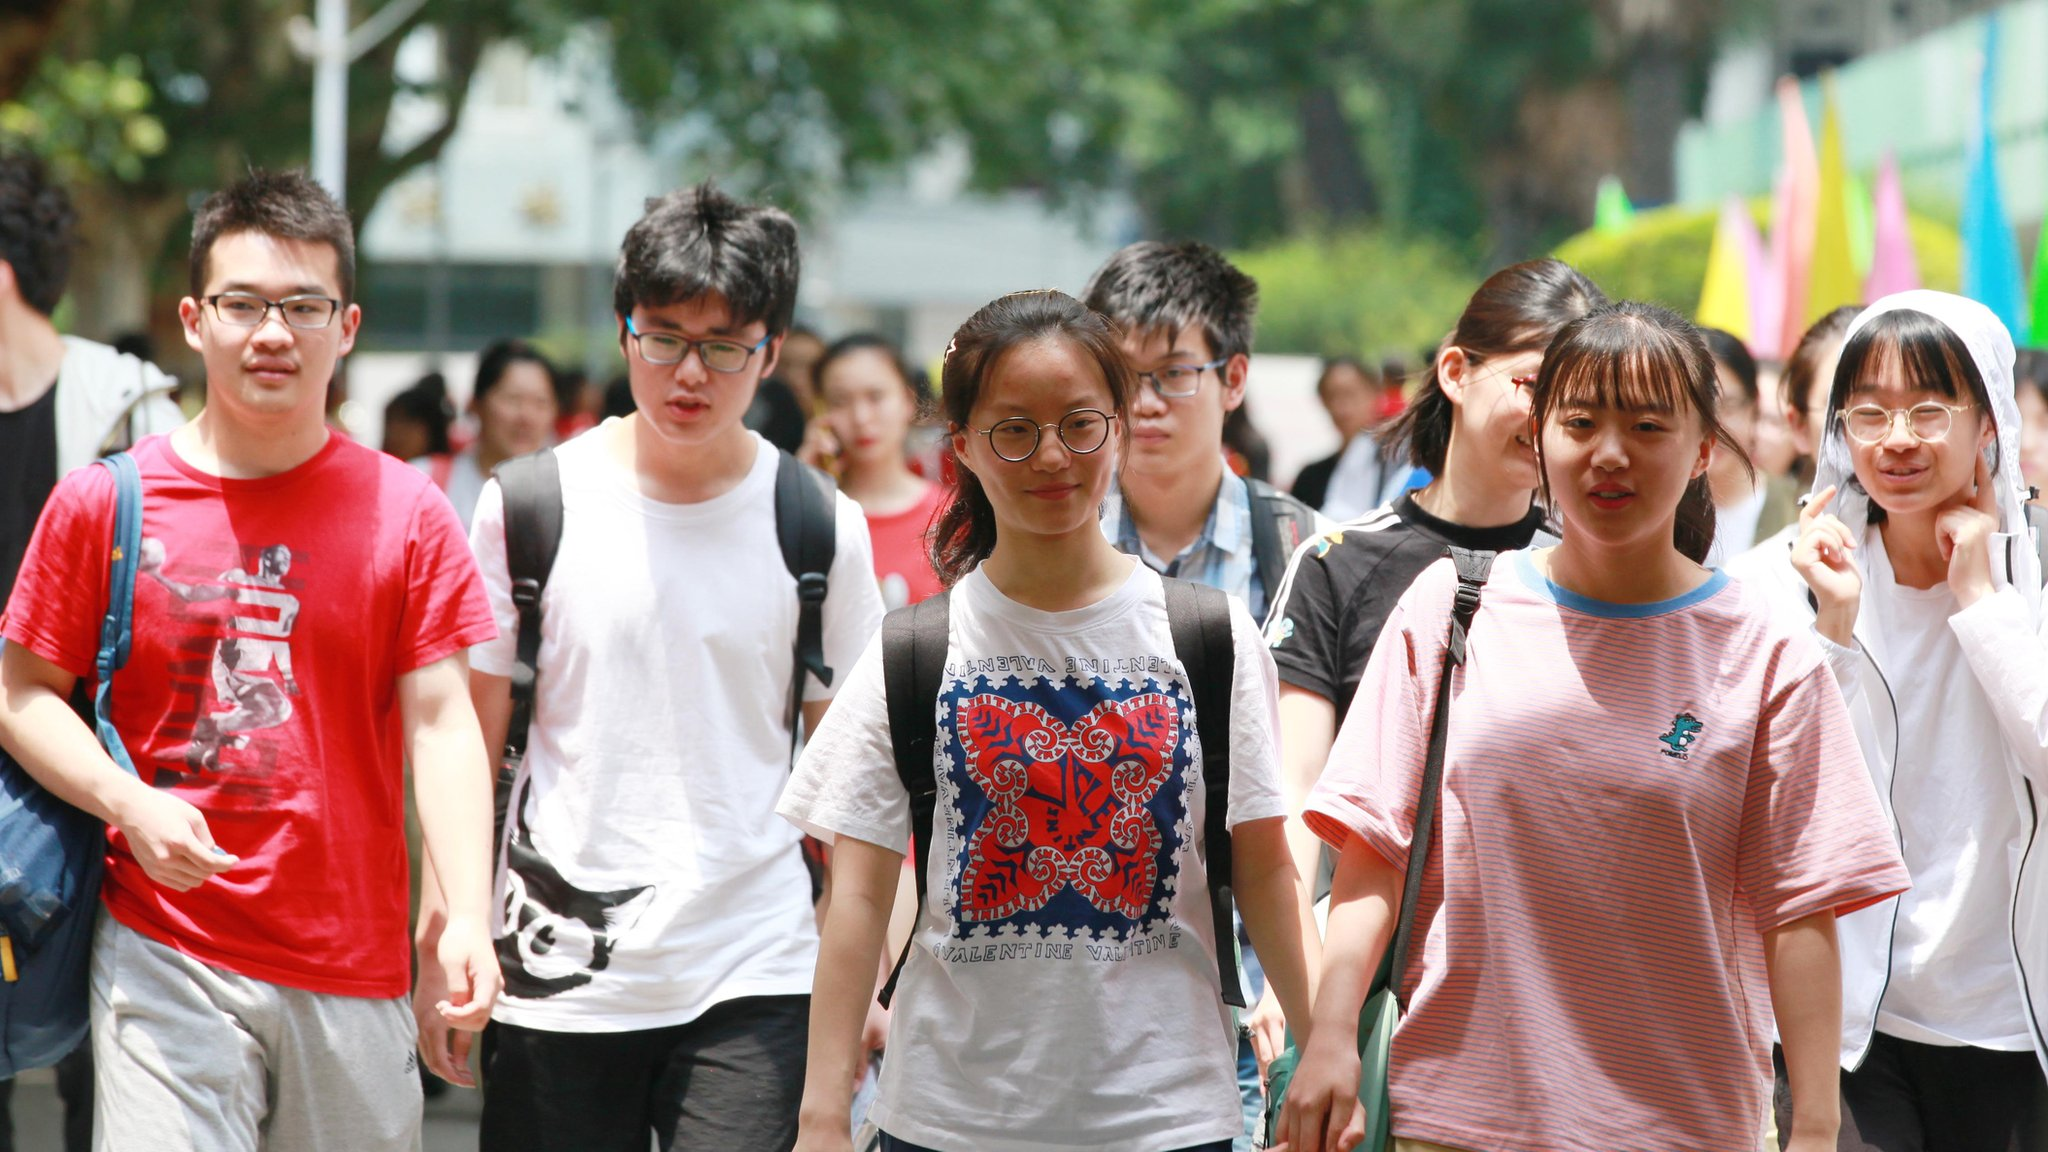 Trade war: How reliant are US colleges on Chinese students?